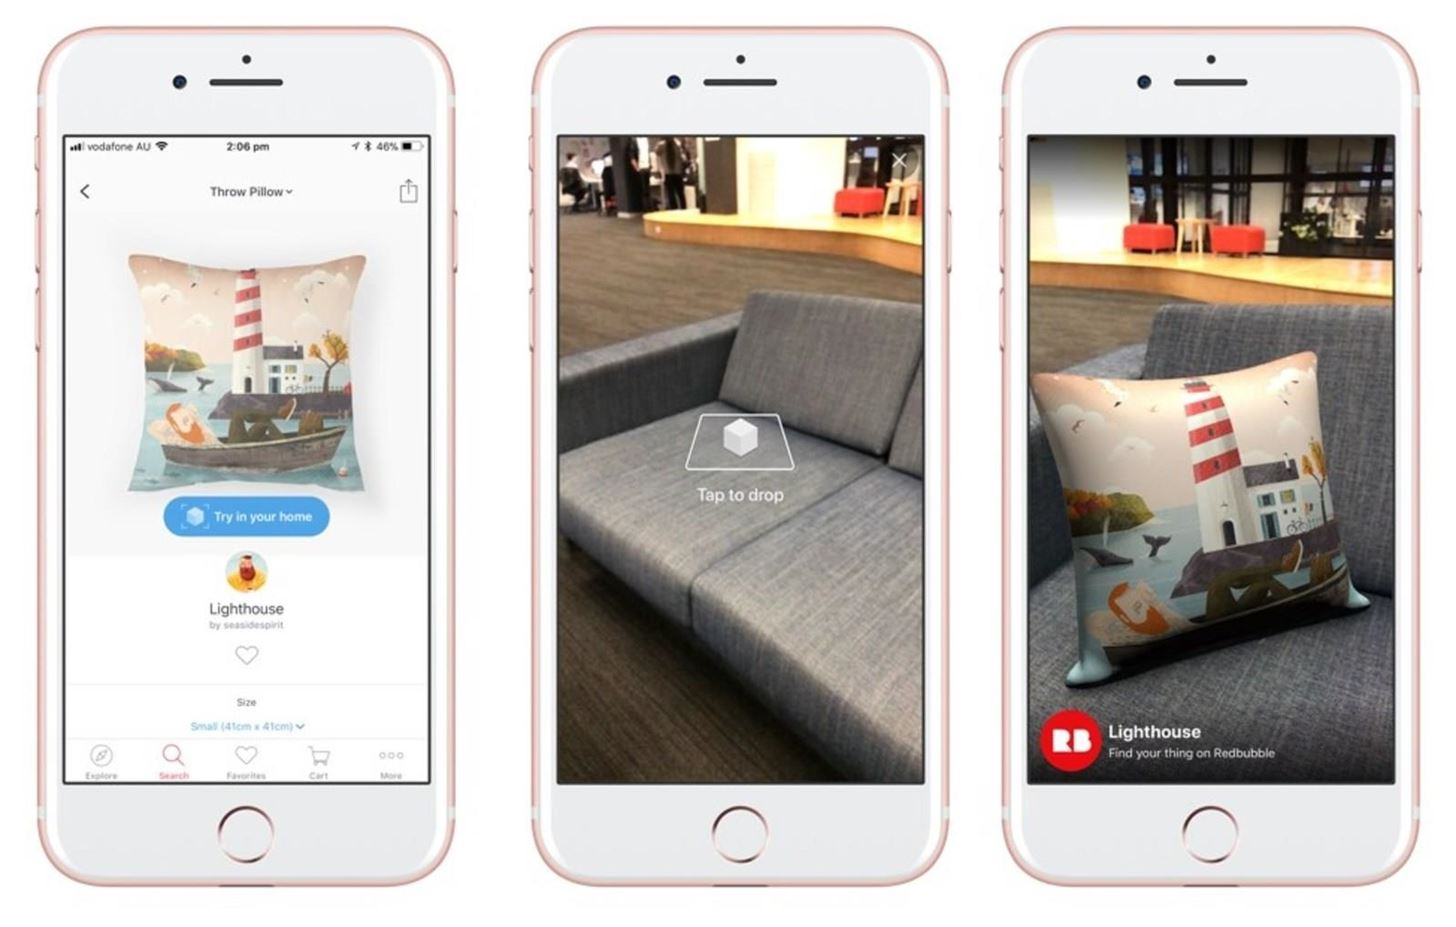 Apple AR: Redbubble Throws Pillows in AR with ARKit Update